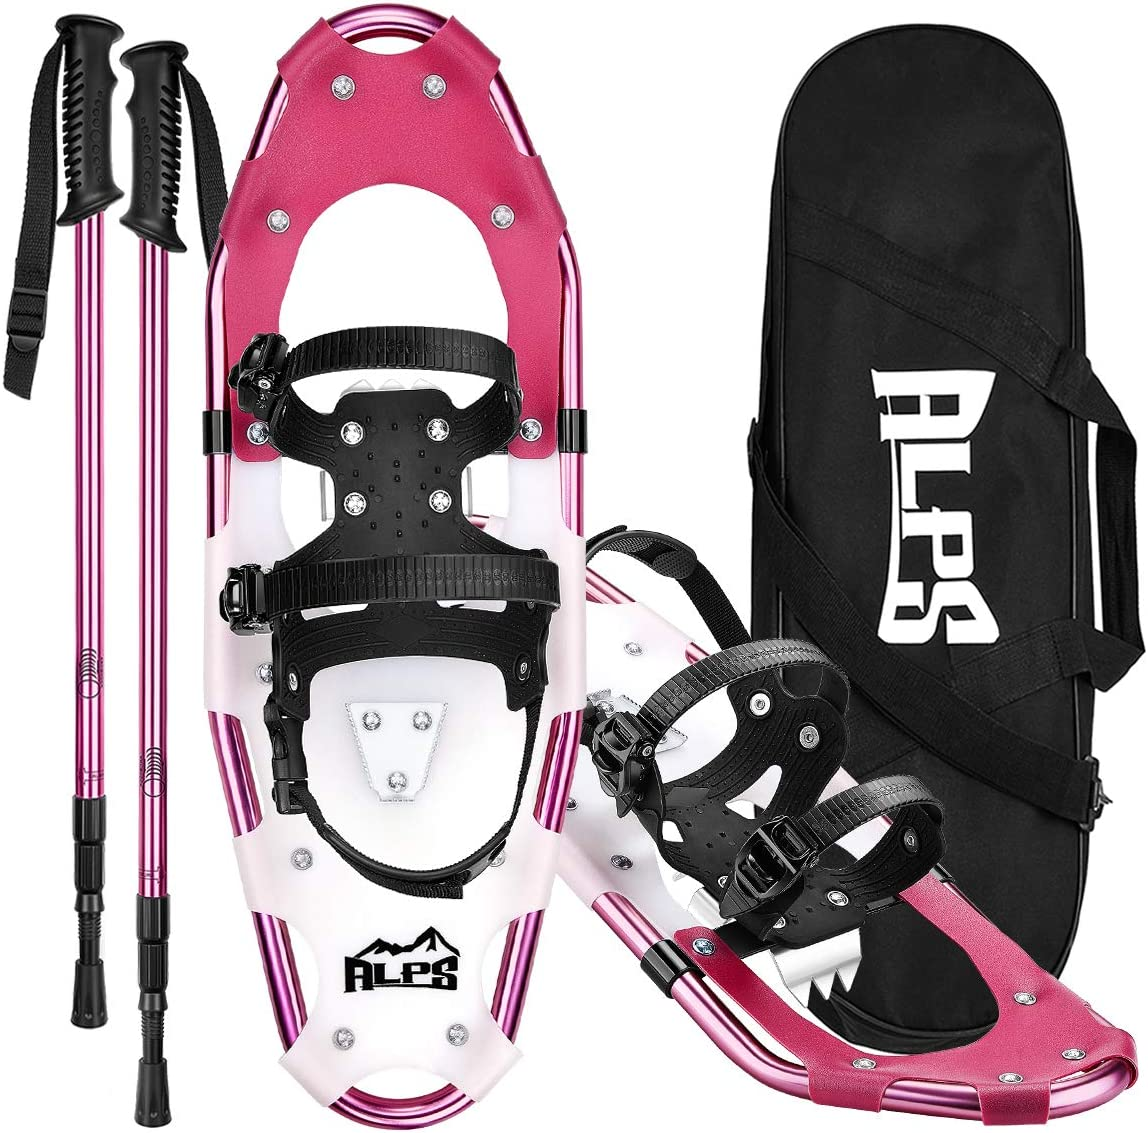 ALPS Lightweight Snowshoes Set for Women,Girls Trekking Poles,Carrying Tote 27